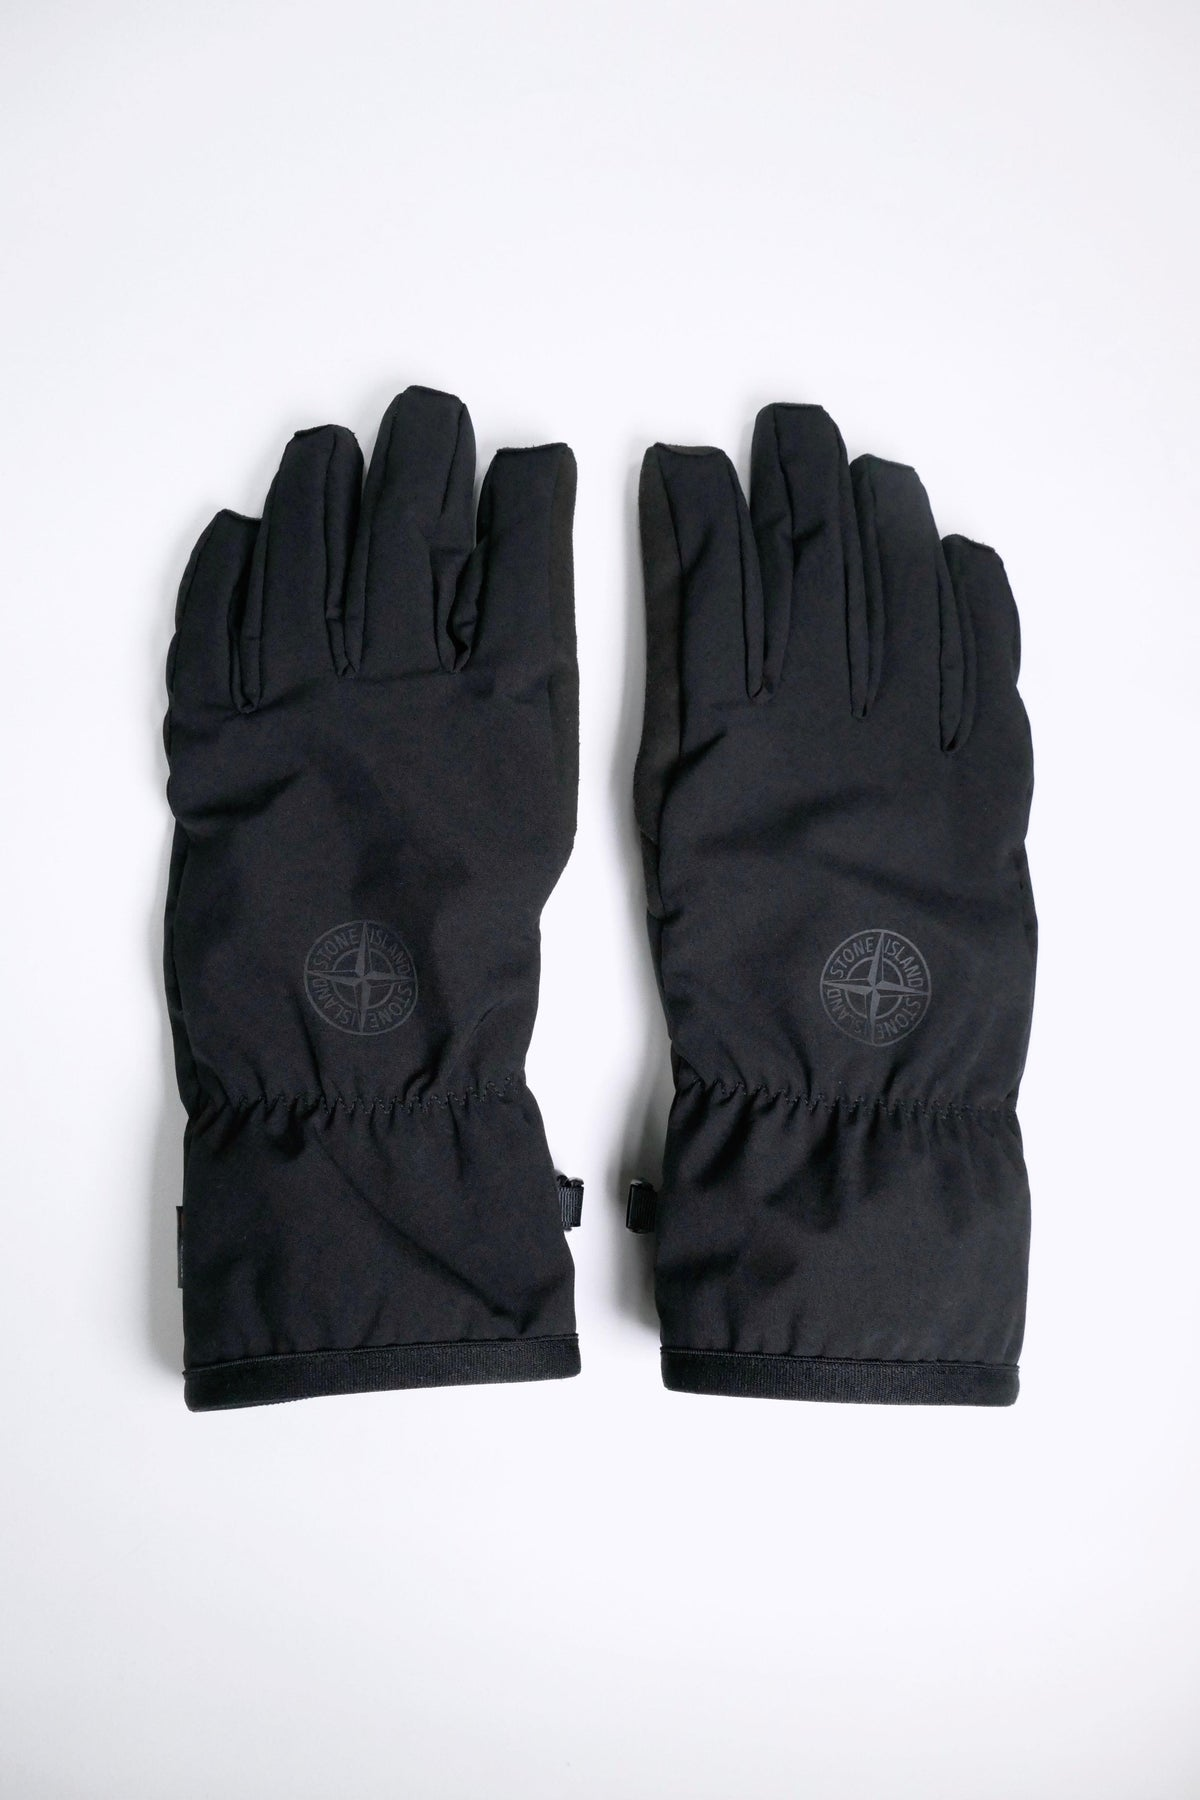 Stone Island 92429 Gloves Black